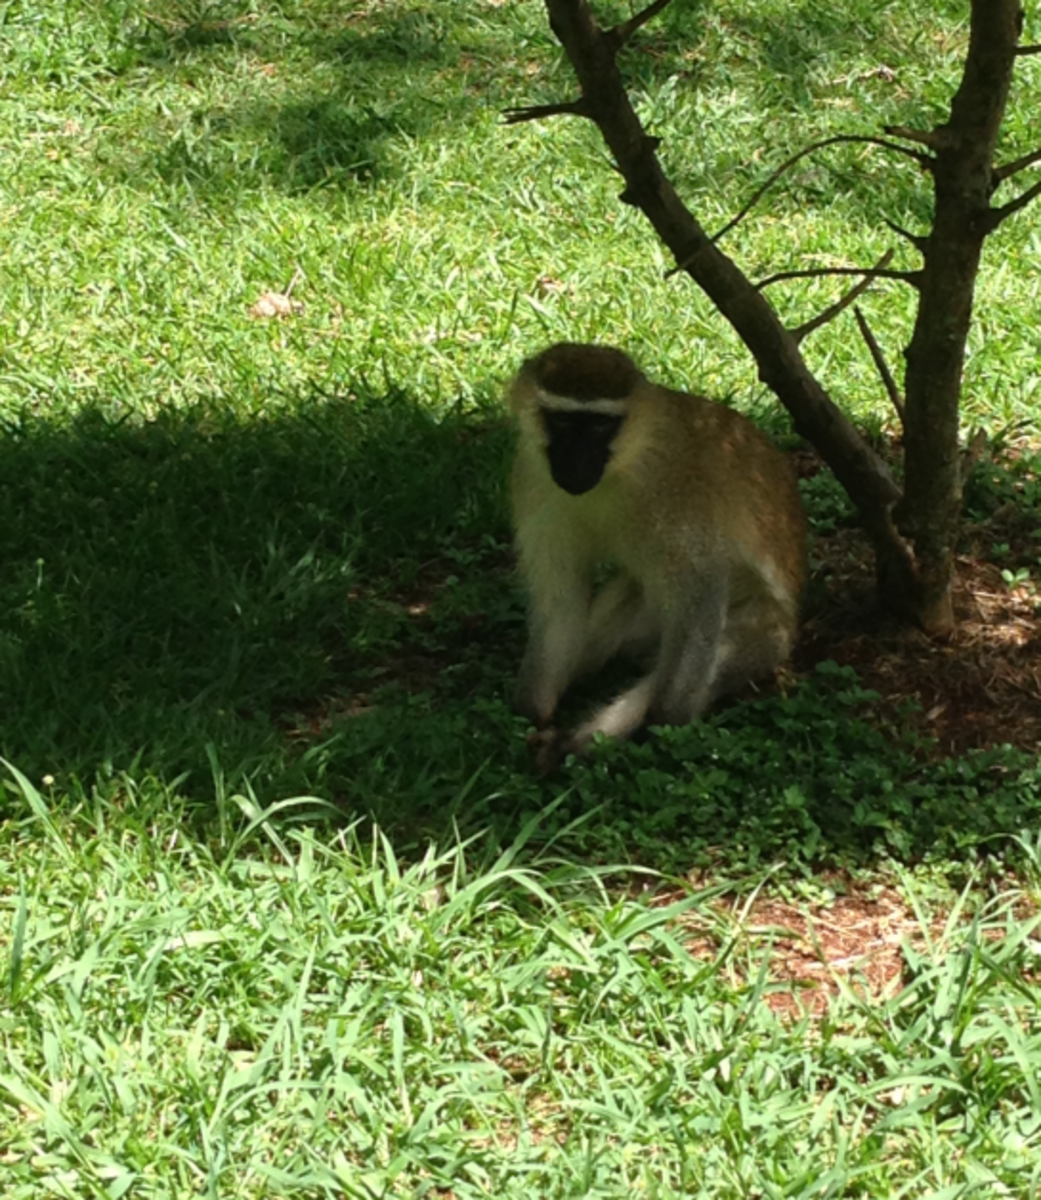 Monkeys can be spotted in many places